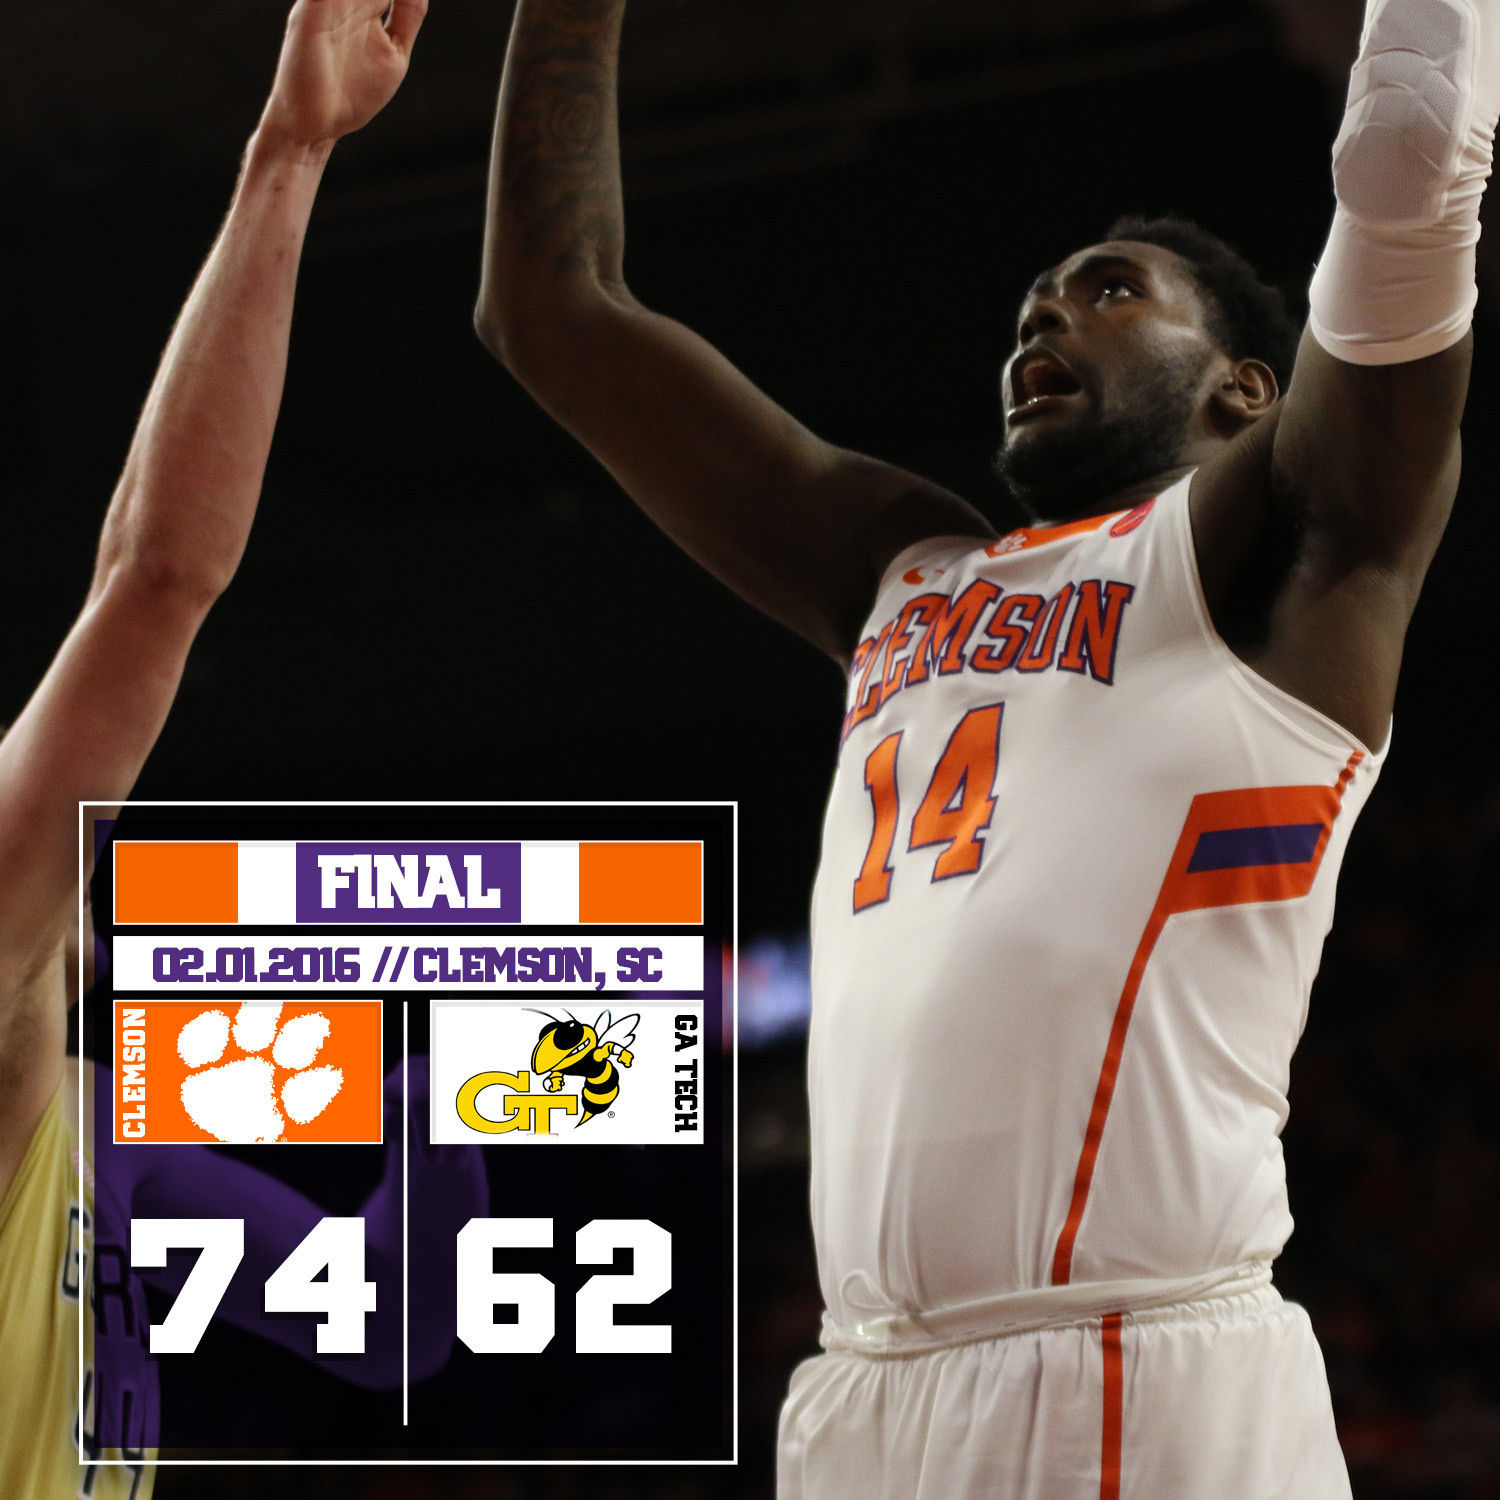 Tigers Beat Georgia Tech, 74-62